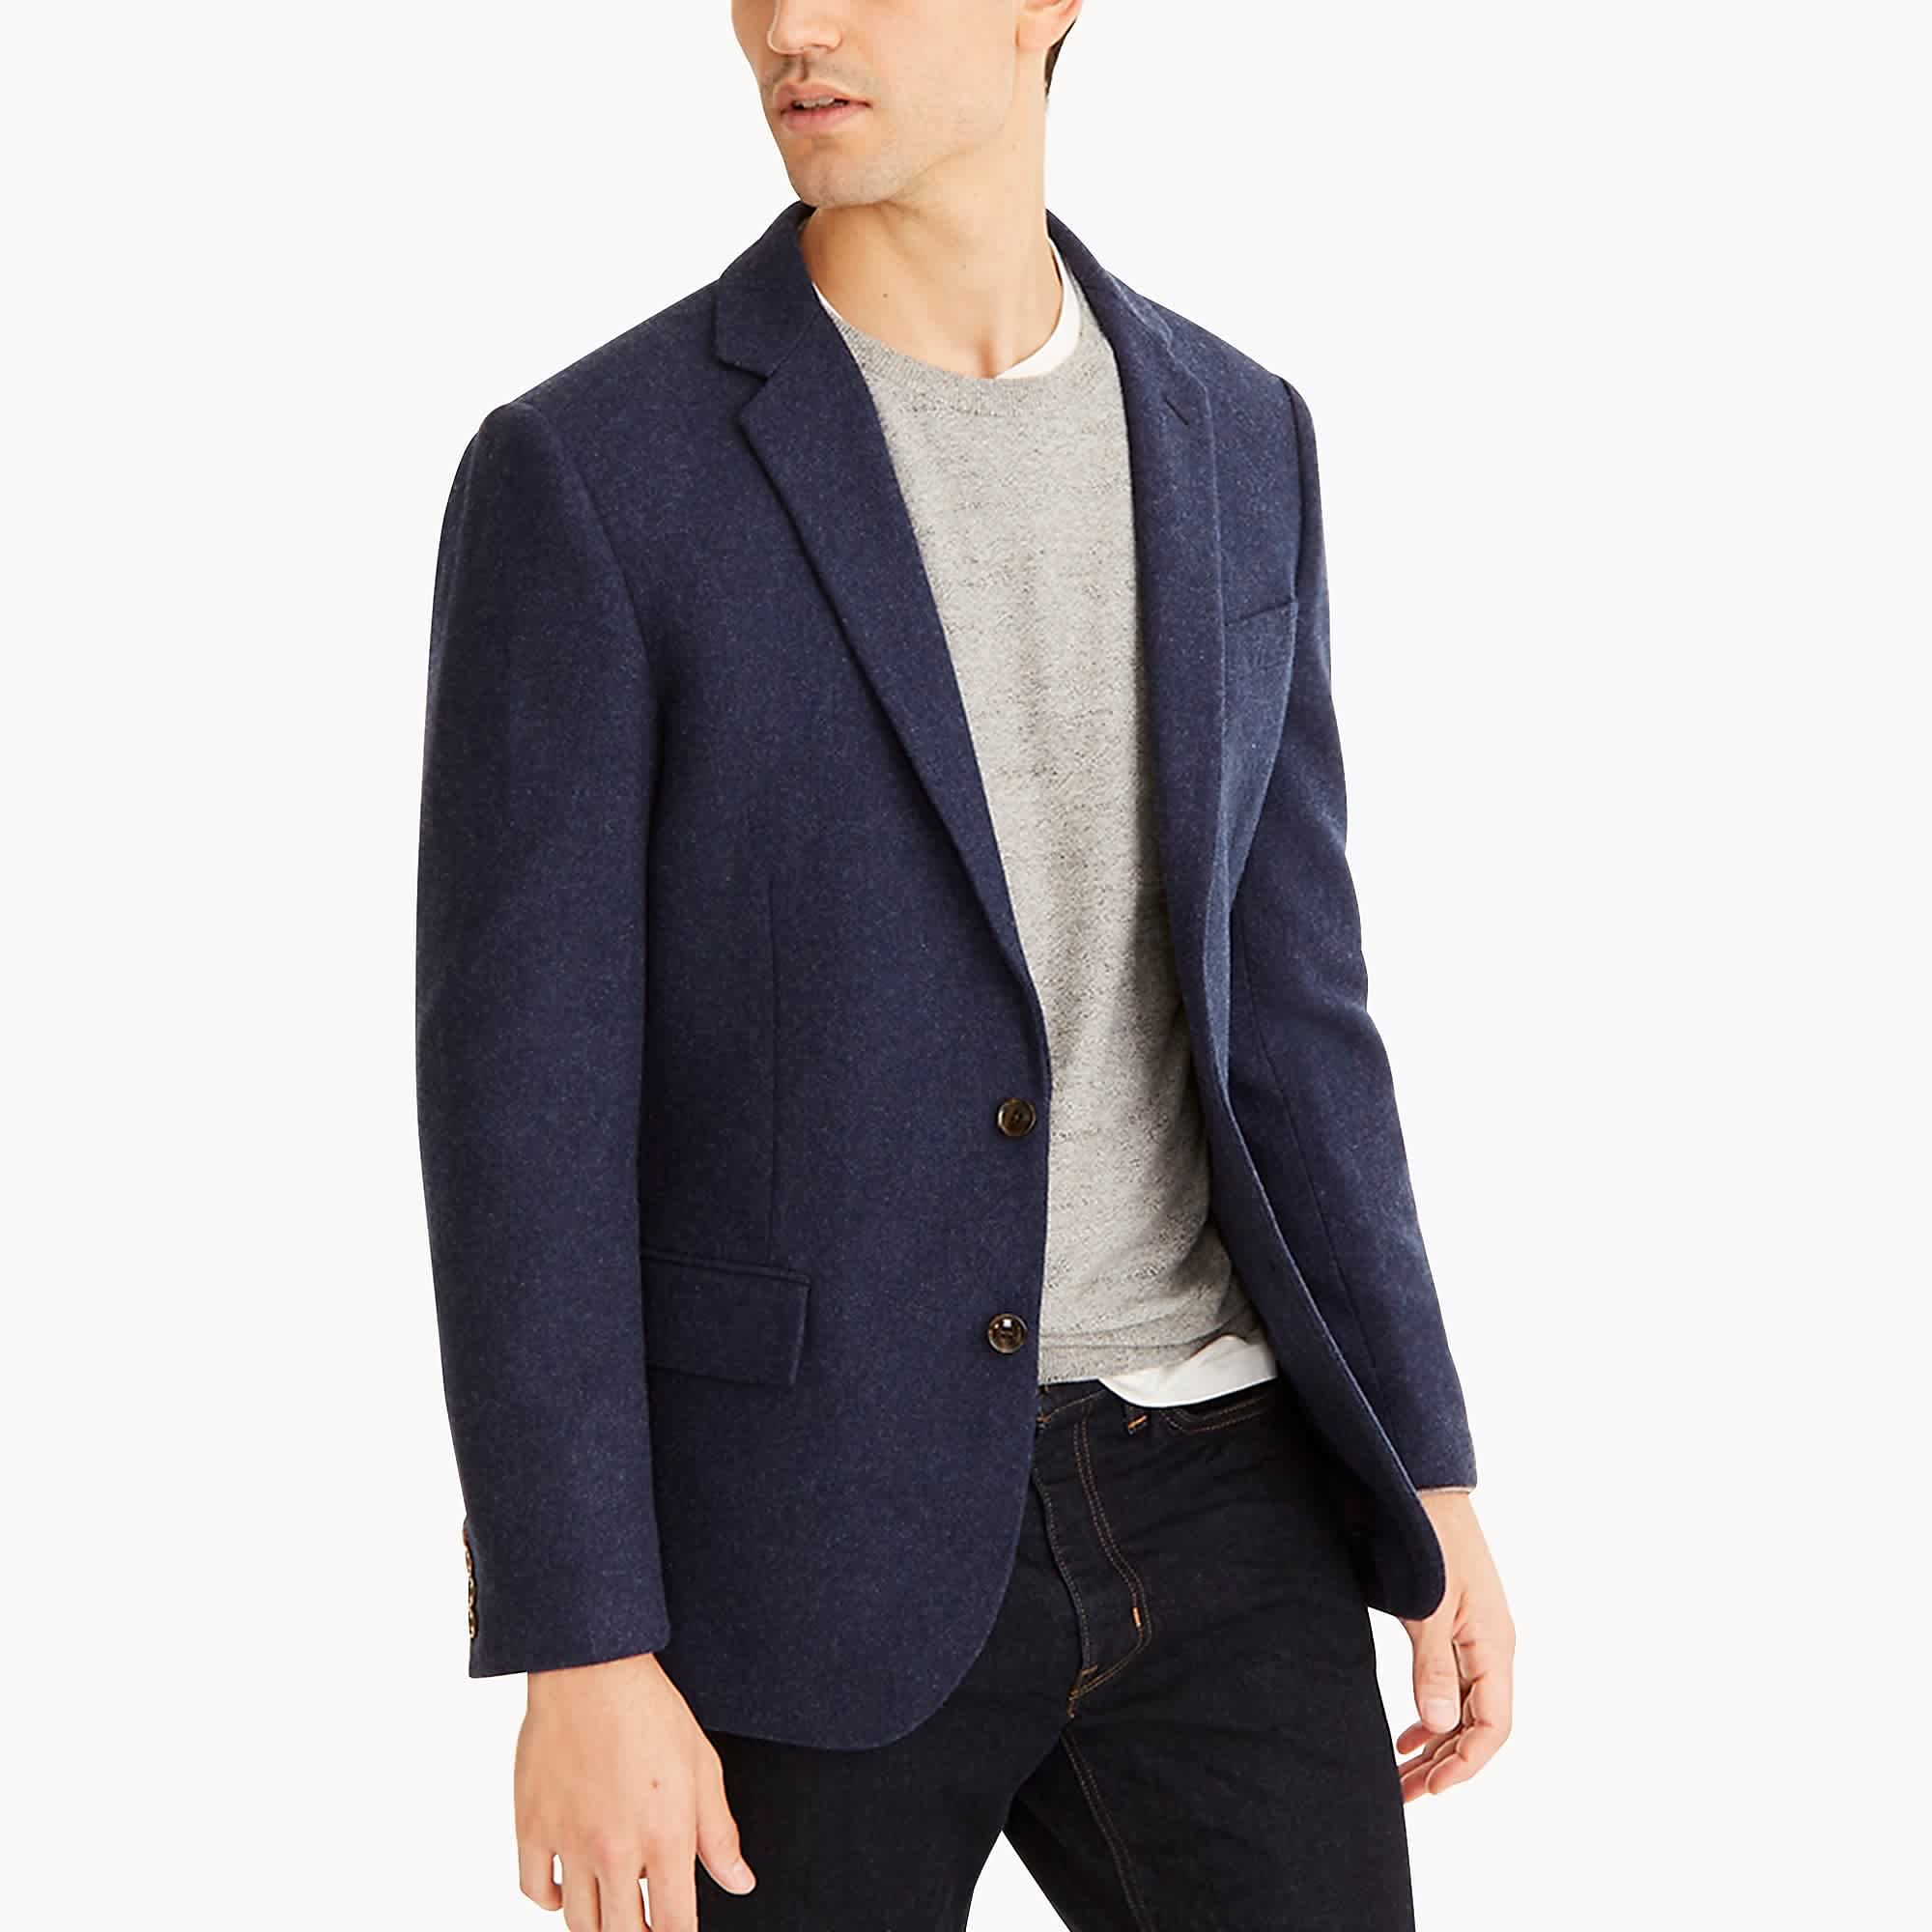 J.Crew Factory Winter Faves